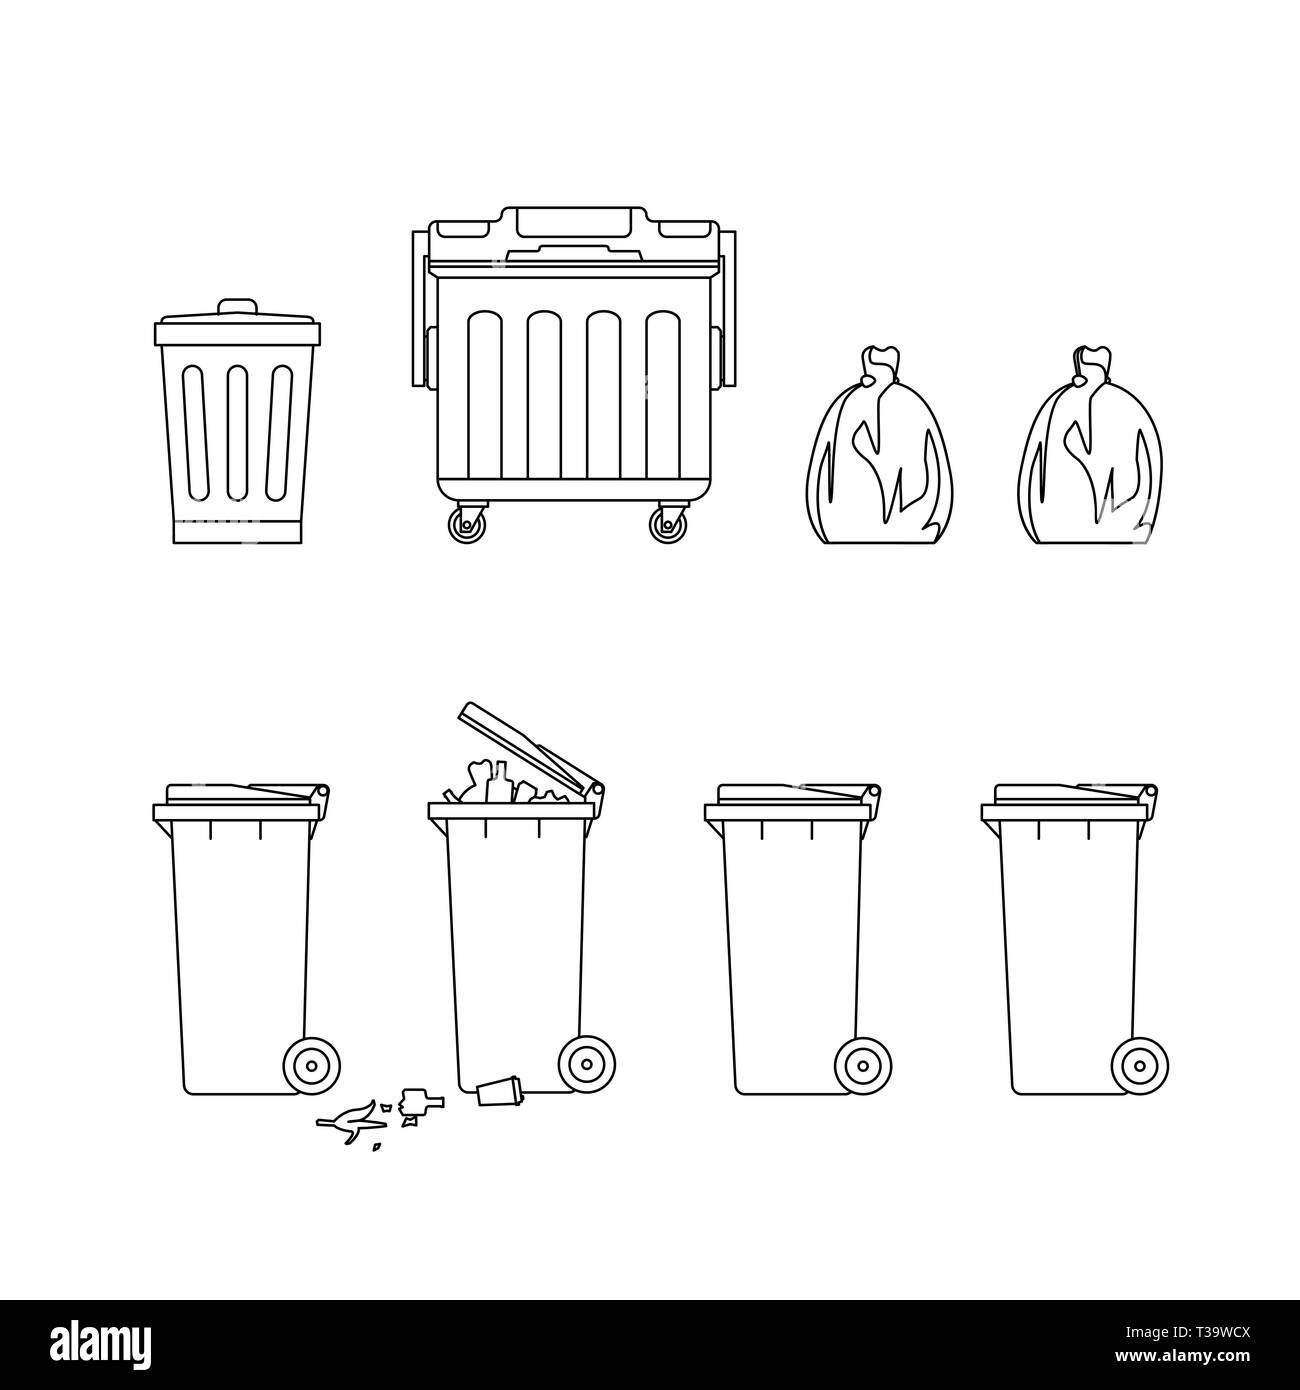 Line drawings of trash cans and dumpsters. Garbage removal line illustration. - Stock Vector